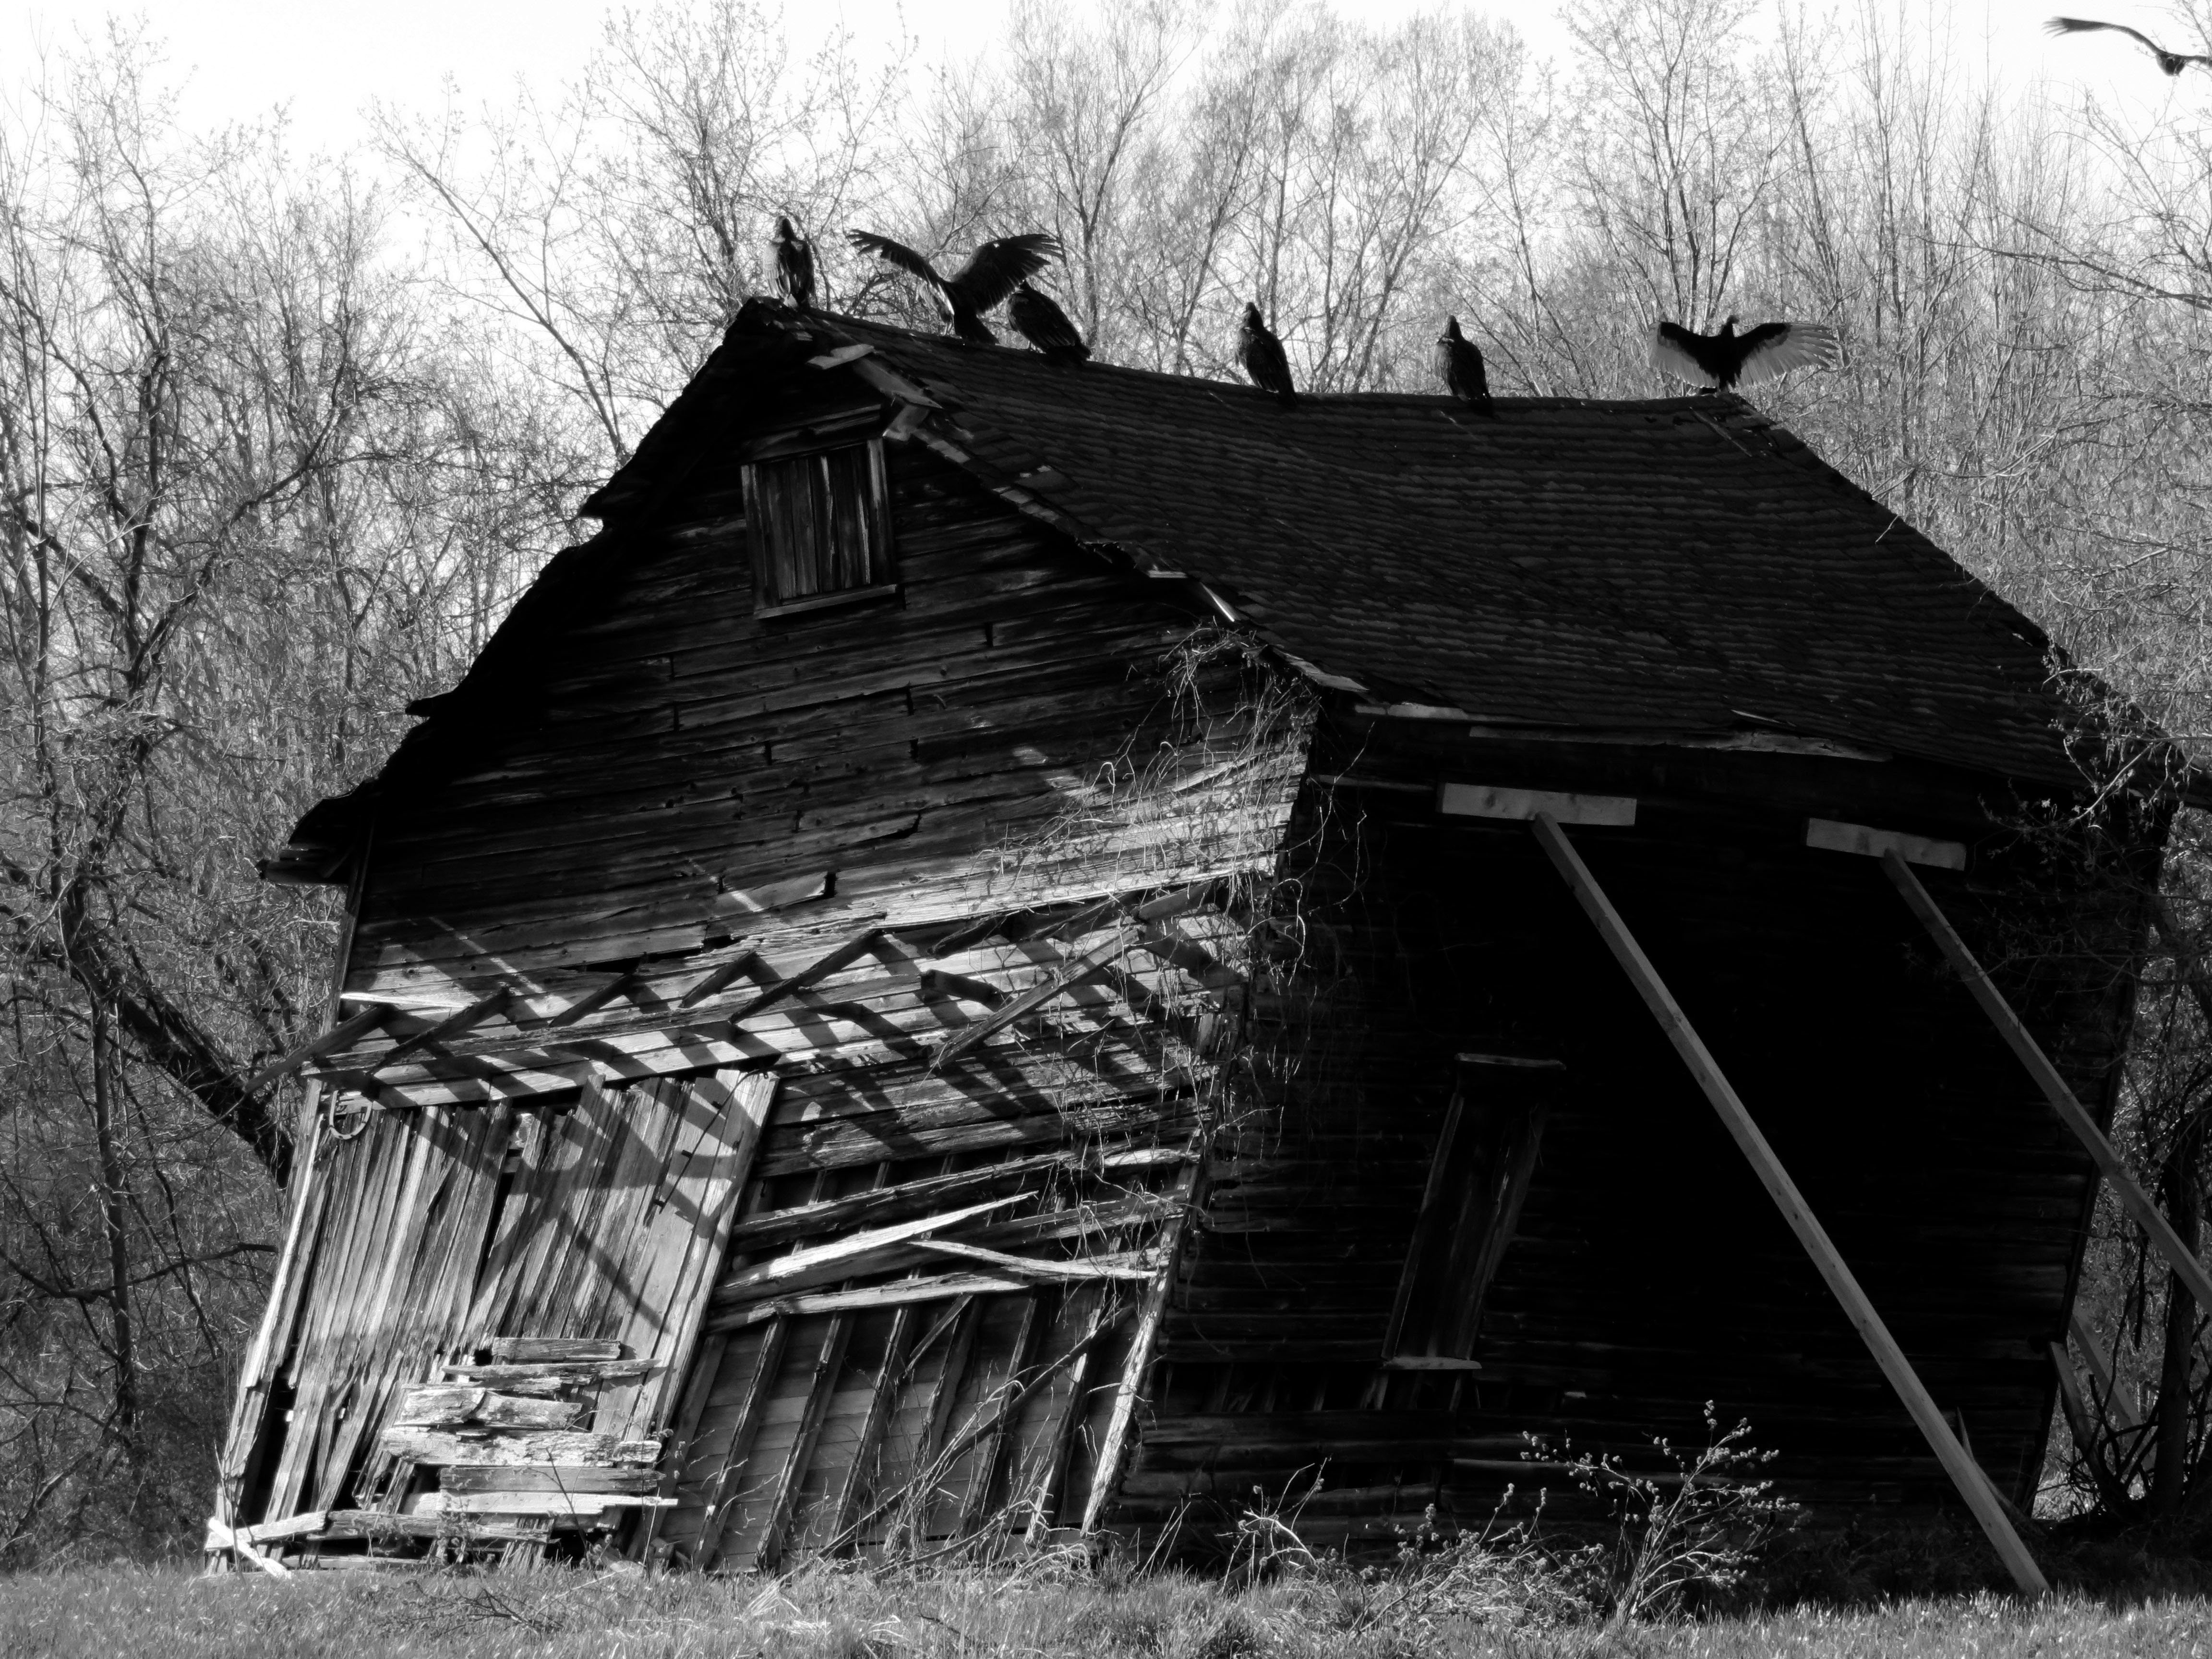 Some of the photos we managed with the SX700 HS are quite nice, such as this shot of vultures perched on a dilapidated shack.